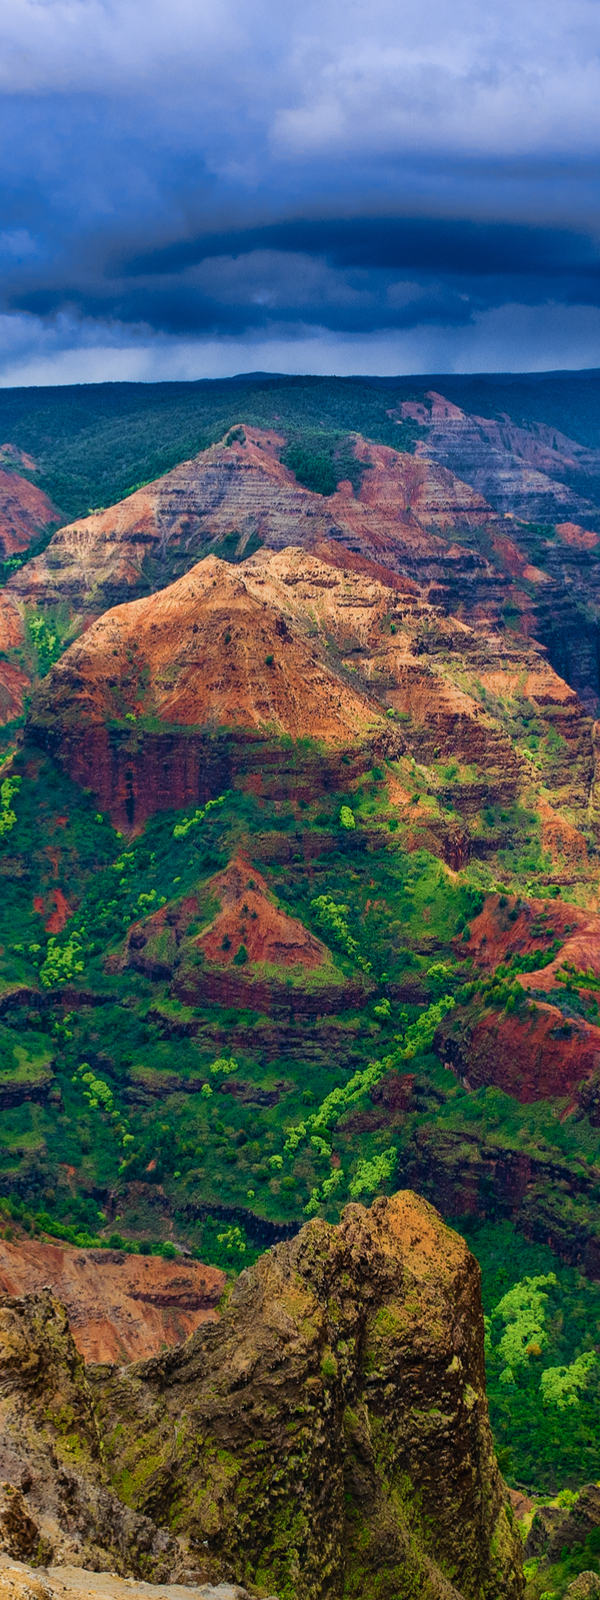 Waimea Canyon State Park, island Kauai, Hawaii, nicknamed the Grand Canyon of the Pacific